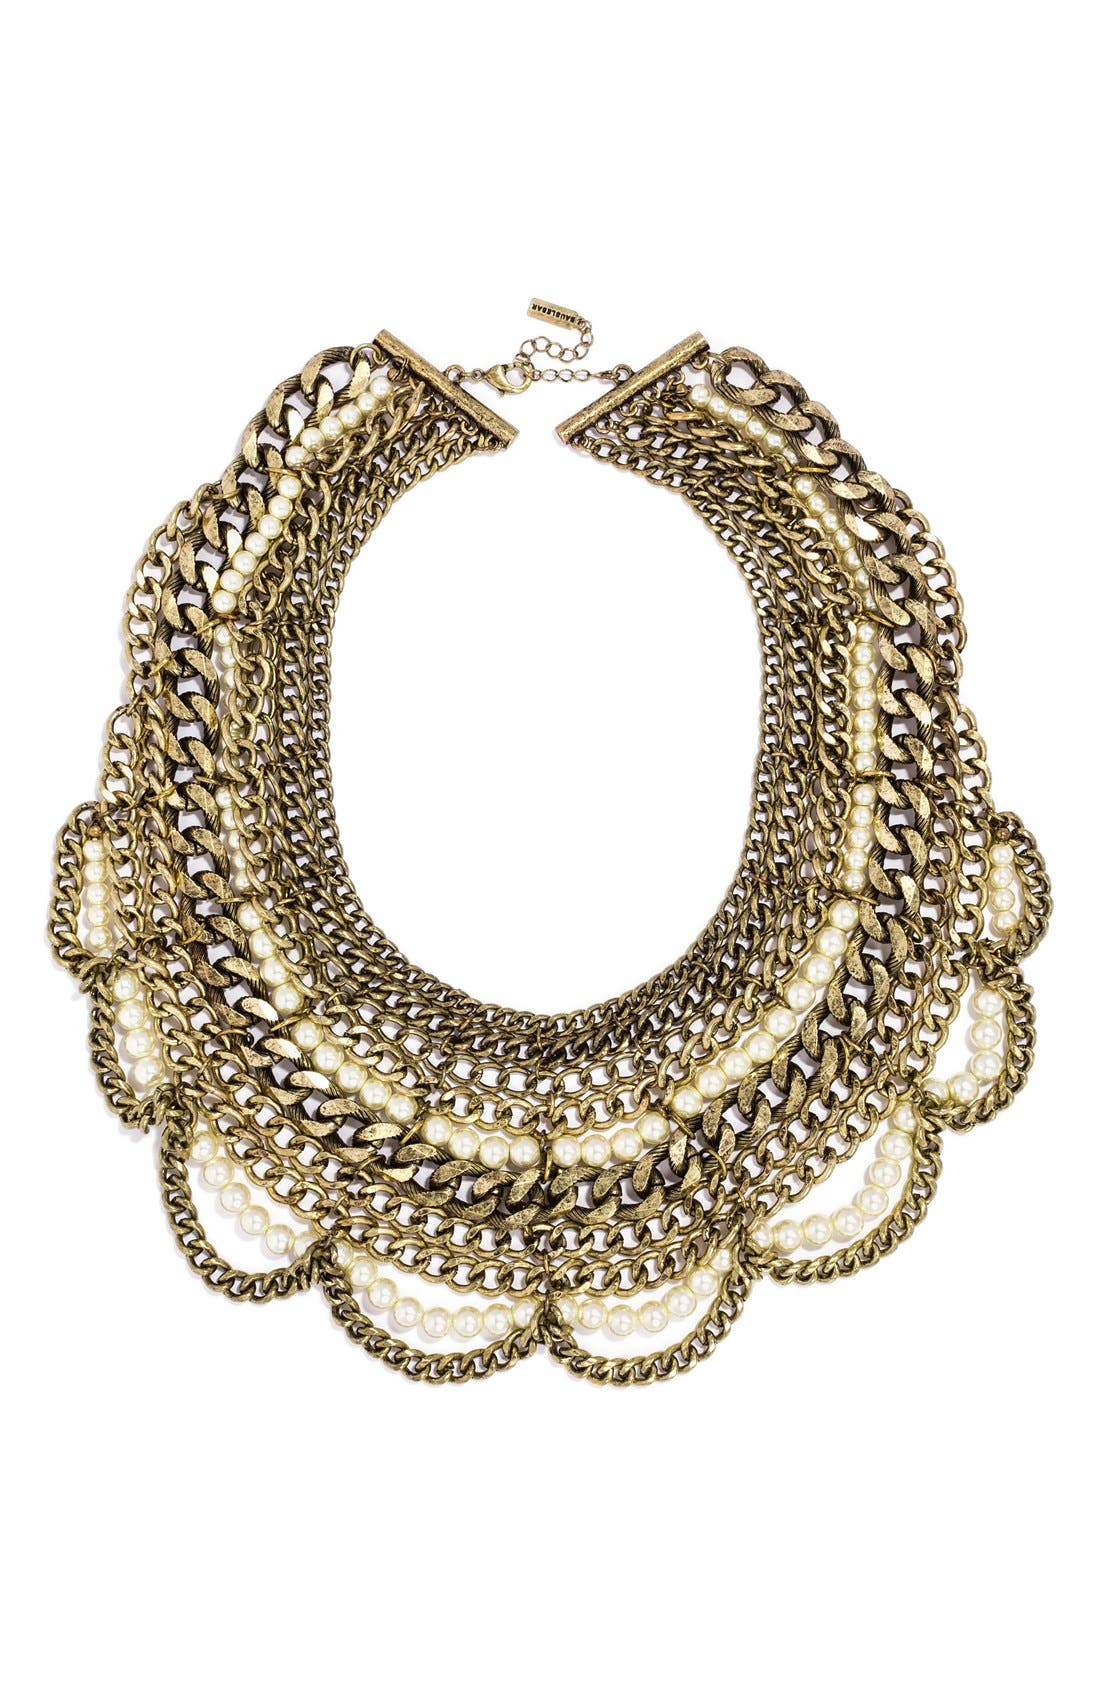 Alternate Image 1 Selected - BaubleBar 'Courtney 2.0' Necklace